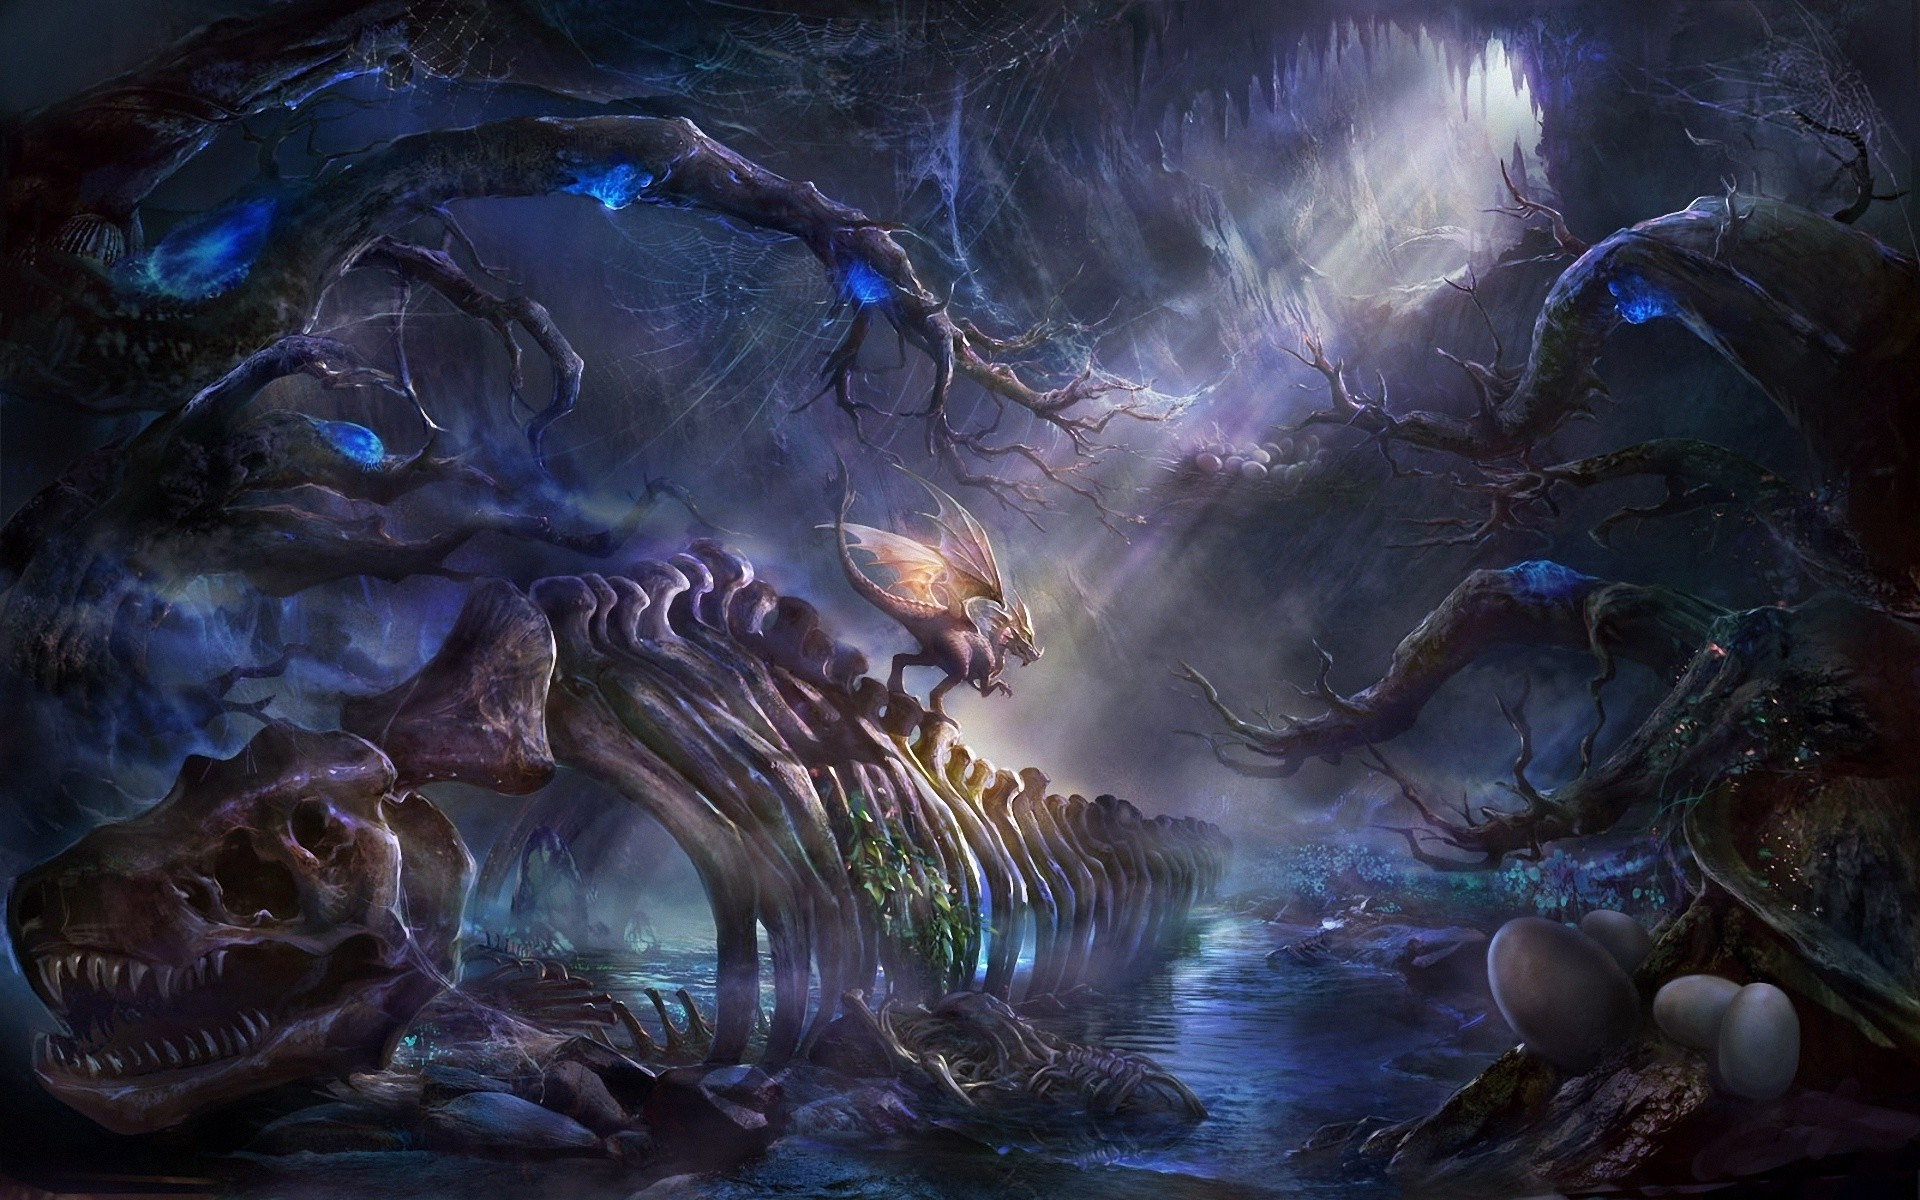 Anime Inspired Hd Fantasy Wallpapers For Your Collection: Anime Dragon Wallpaper (67+ Images